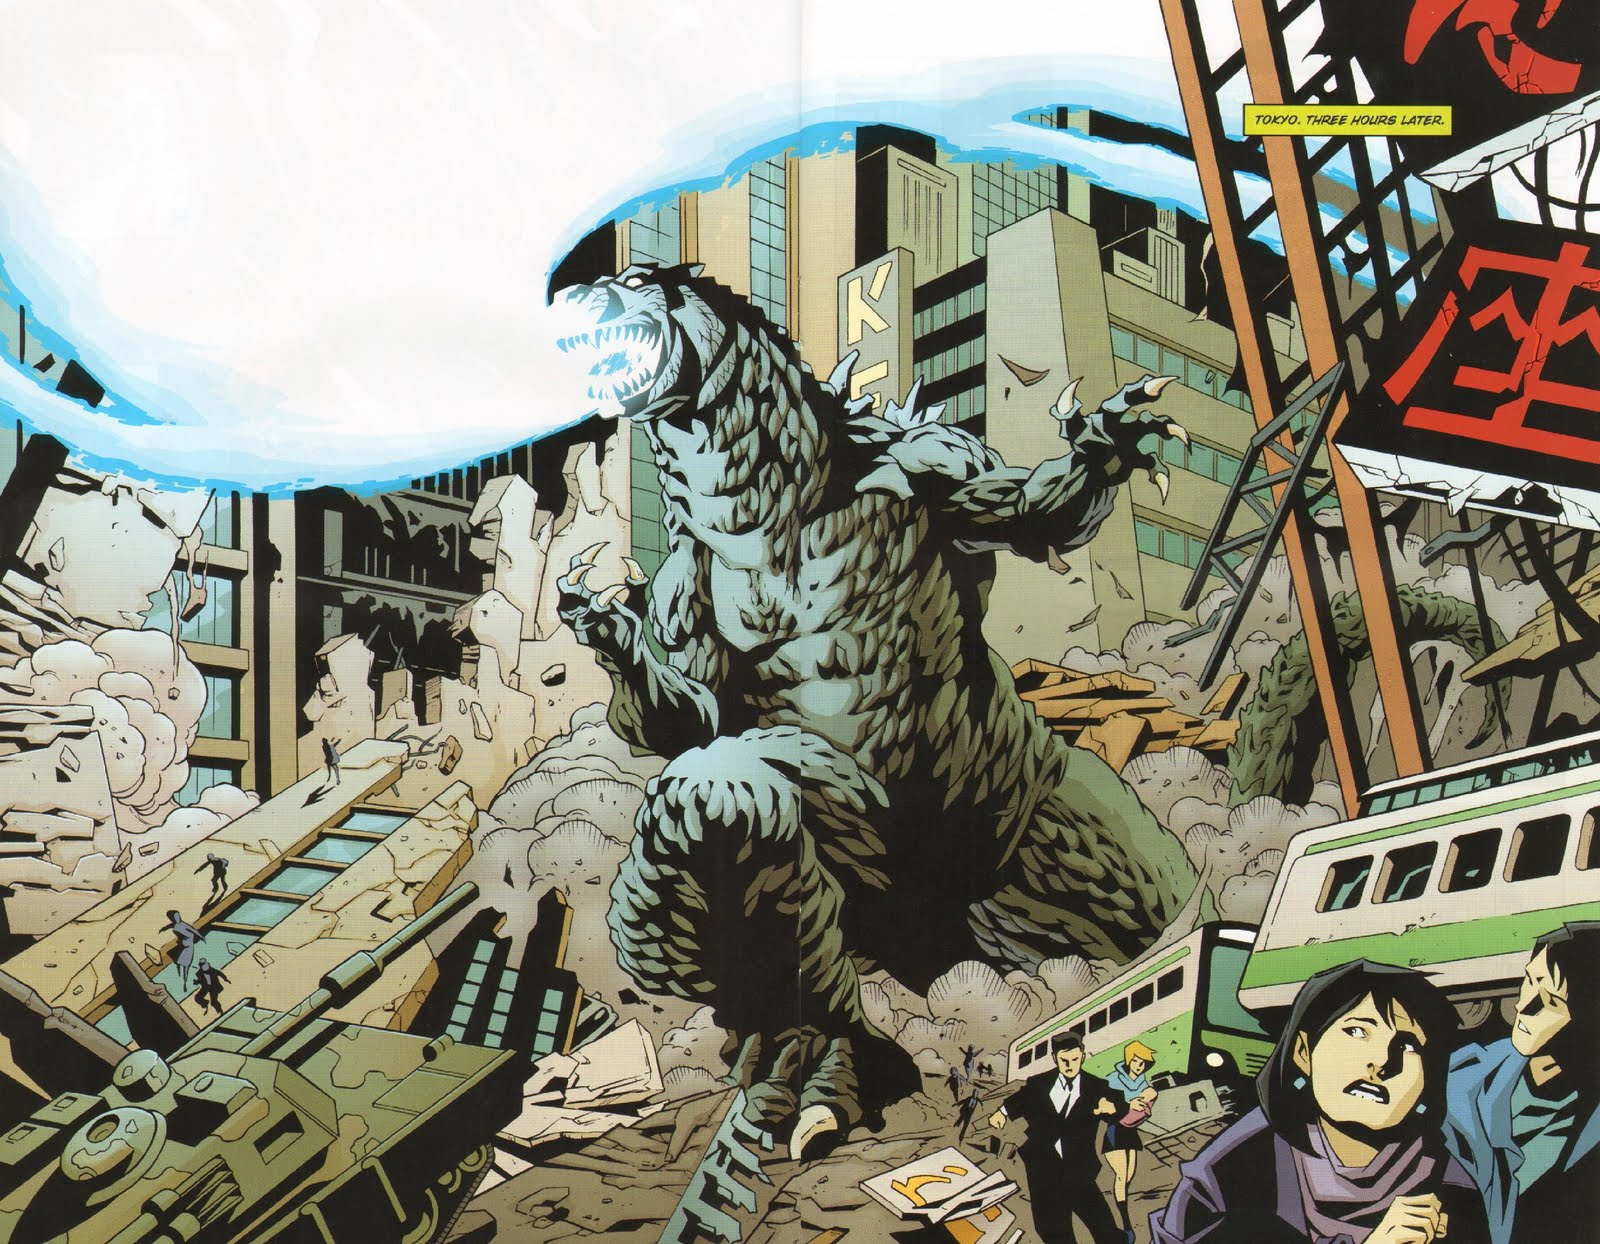 Godzilla: Kingdom of Monsters #1 Publisher: IDW Writer(s): Eric Powell & Tracy Marsh Artist: Phil Hester (cover by Eric Powell)...